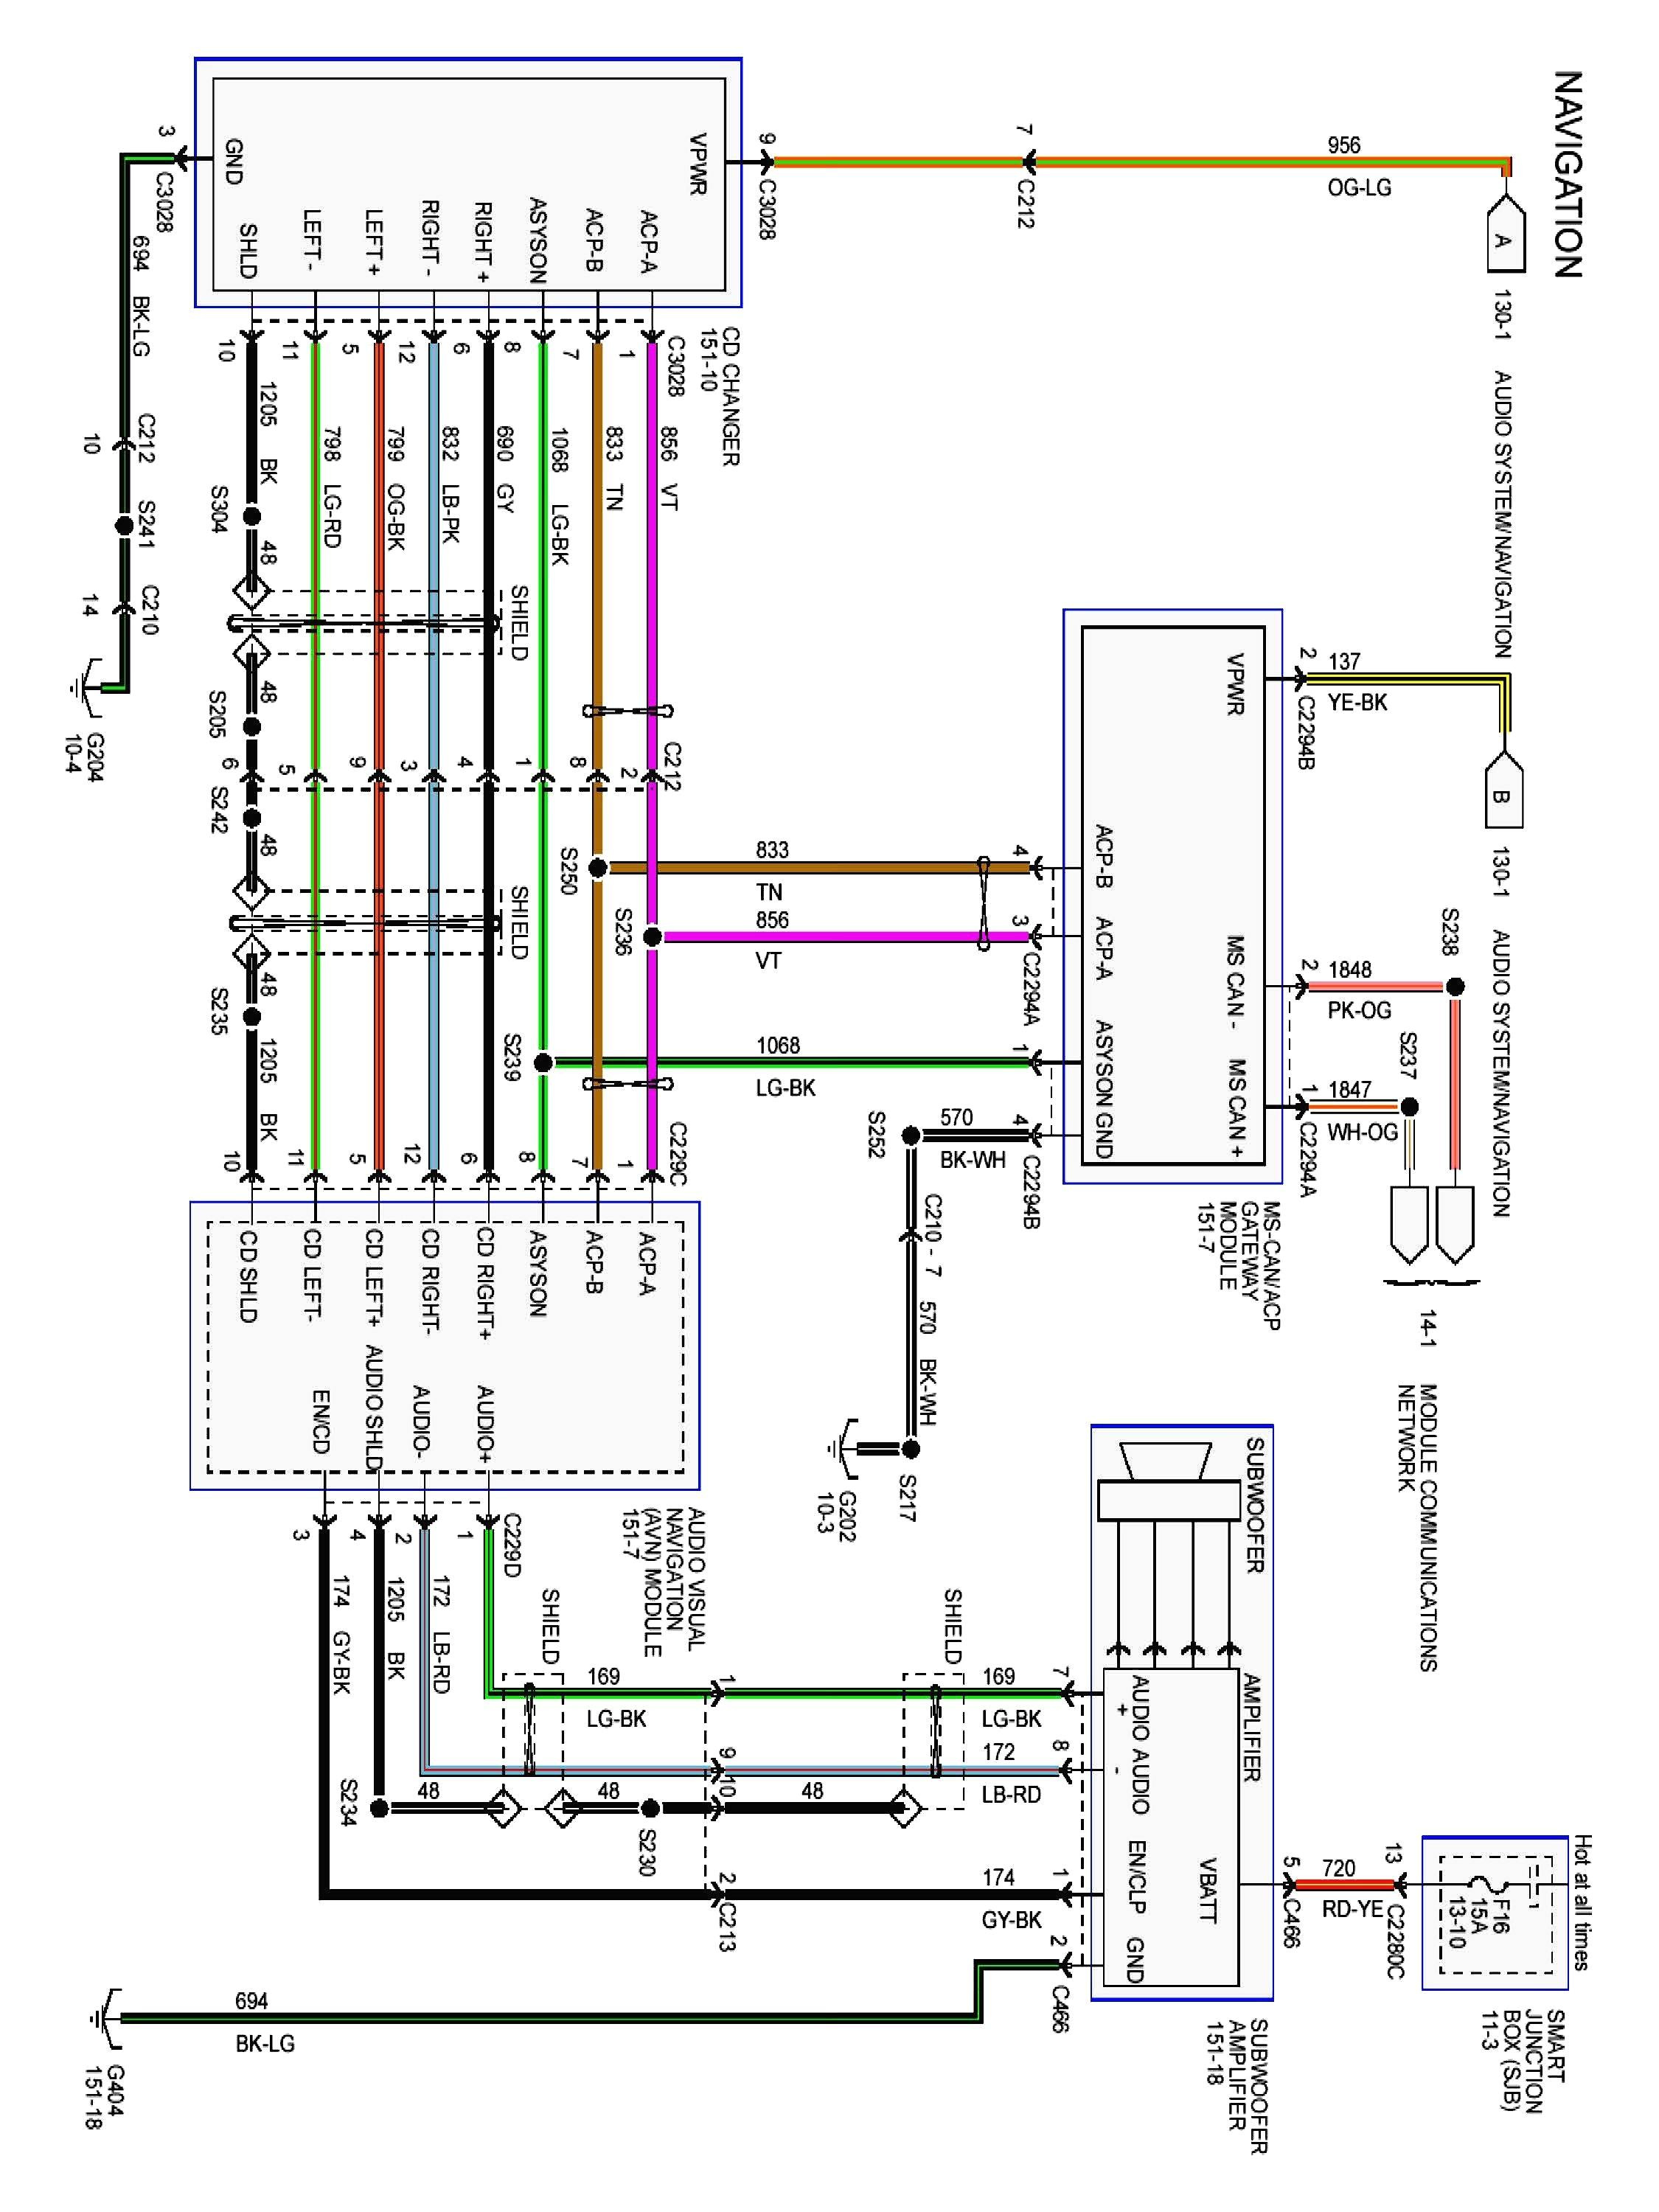 2006 ford freestyle wiring diagram | star-global wiring diagram -  star-global.ilcasaledelbarone.it  ilcasaledelbarone.it